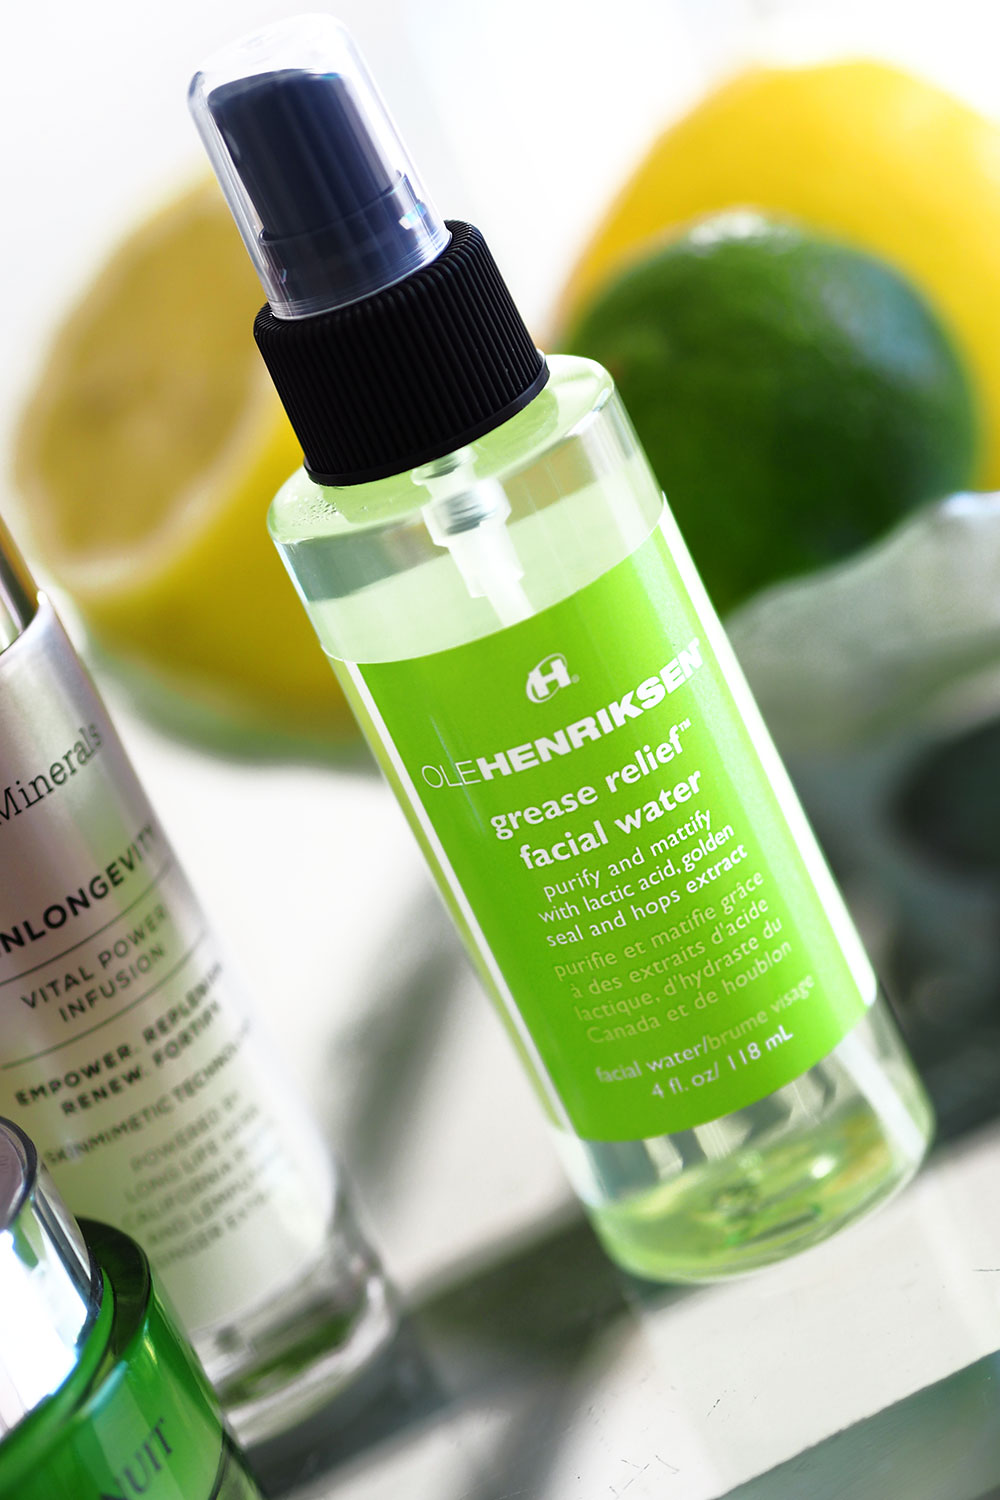 ole-henriksen-grease-relief-facial-water-zoe-newlove-summer-skincare-